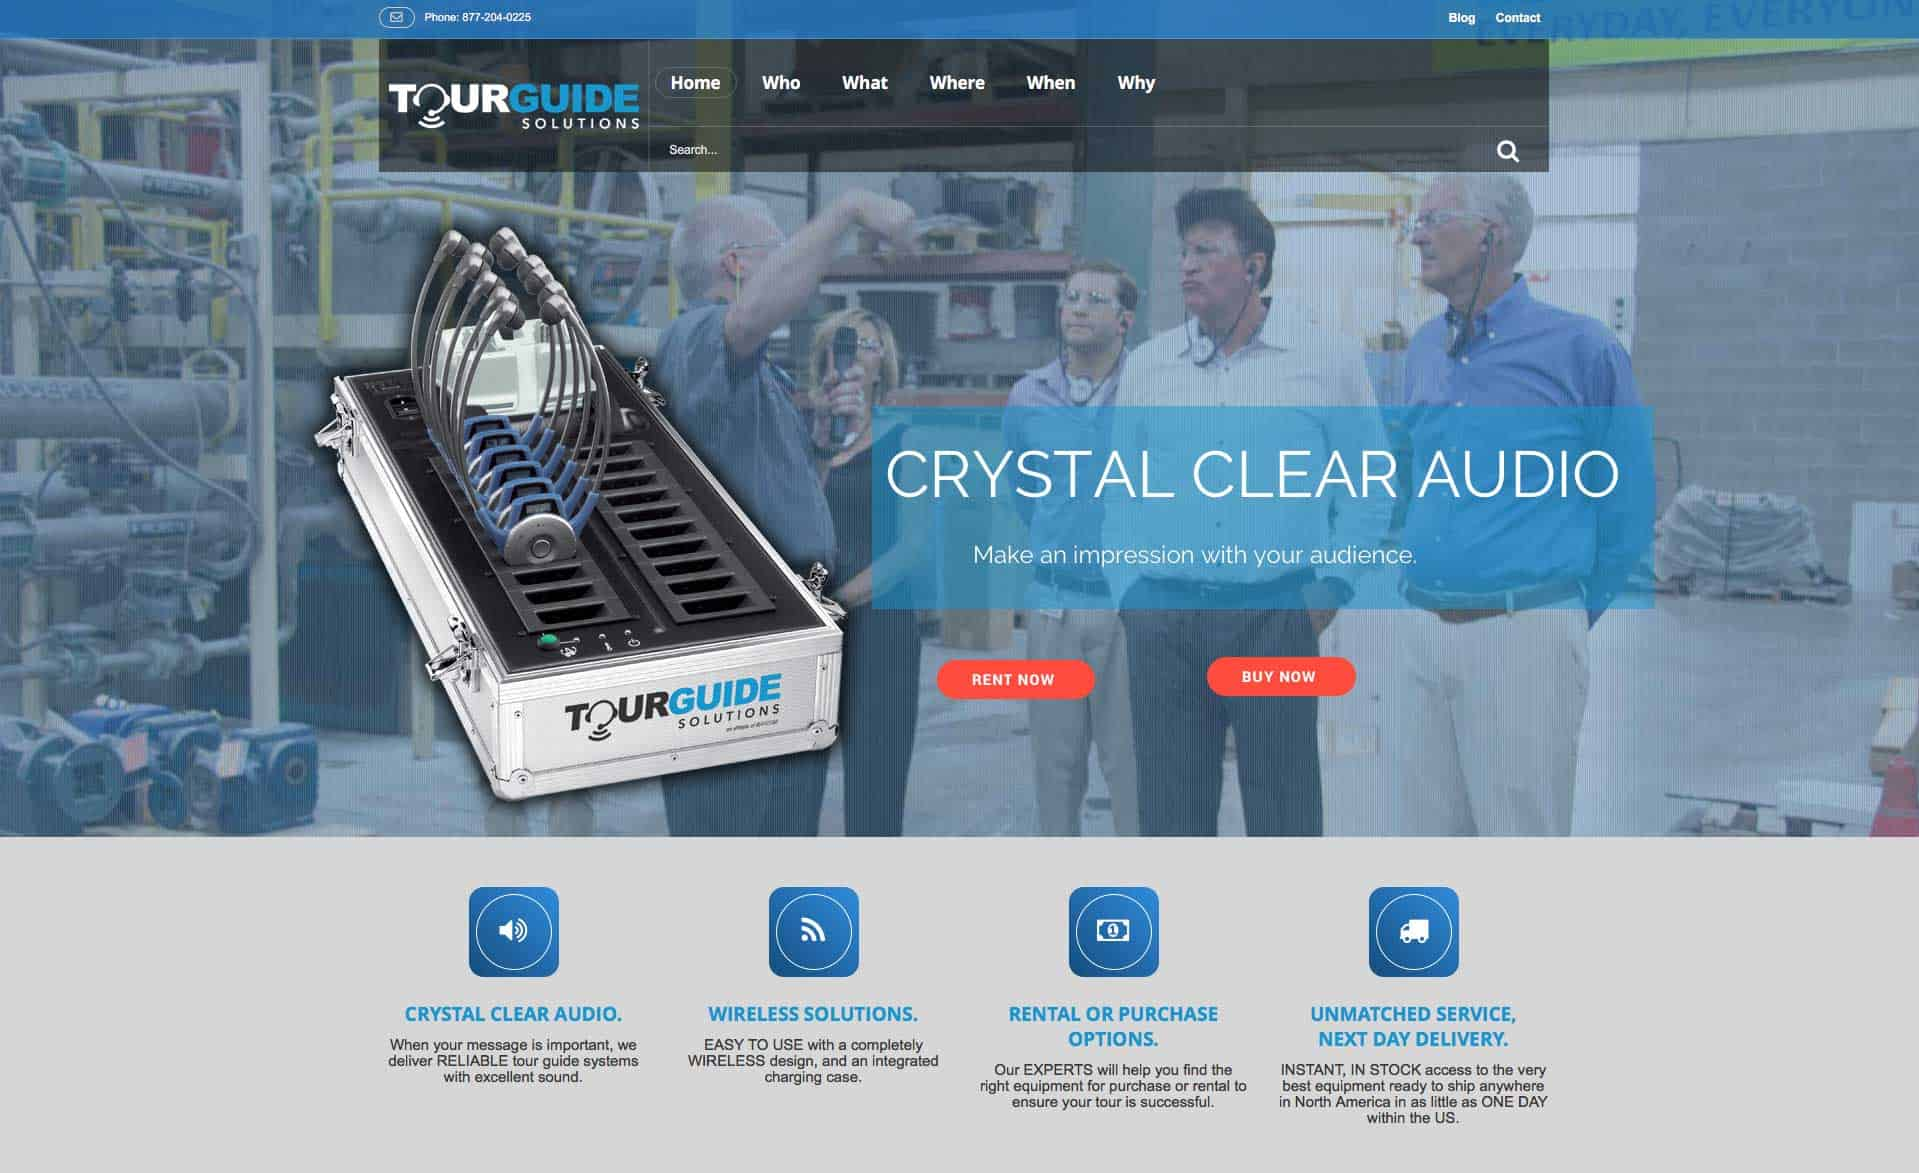 TourGuide Solutions Launches New Website with Enhanced Features